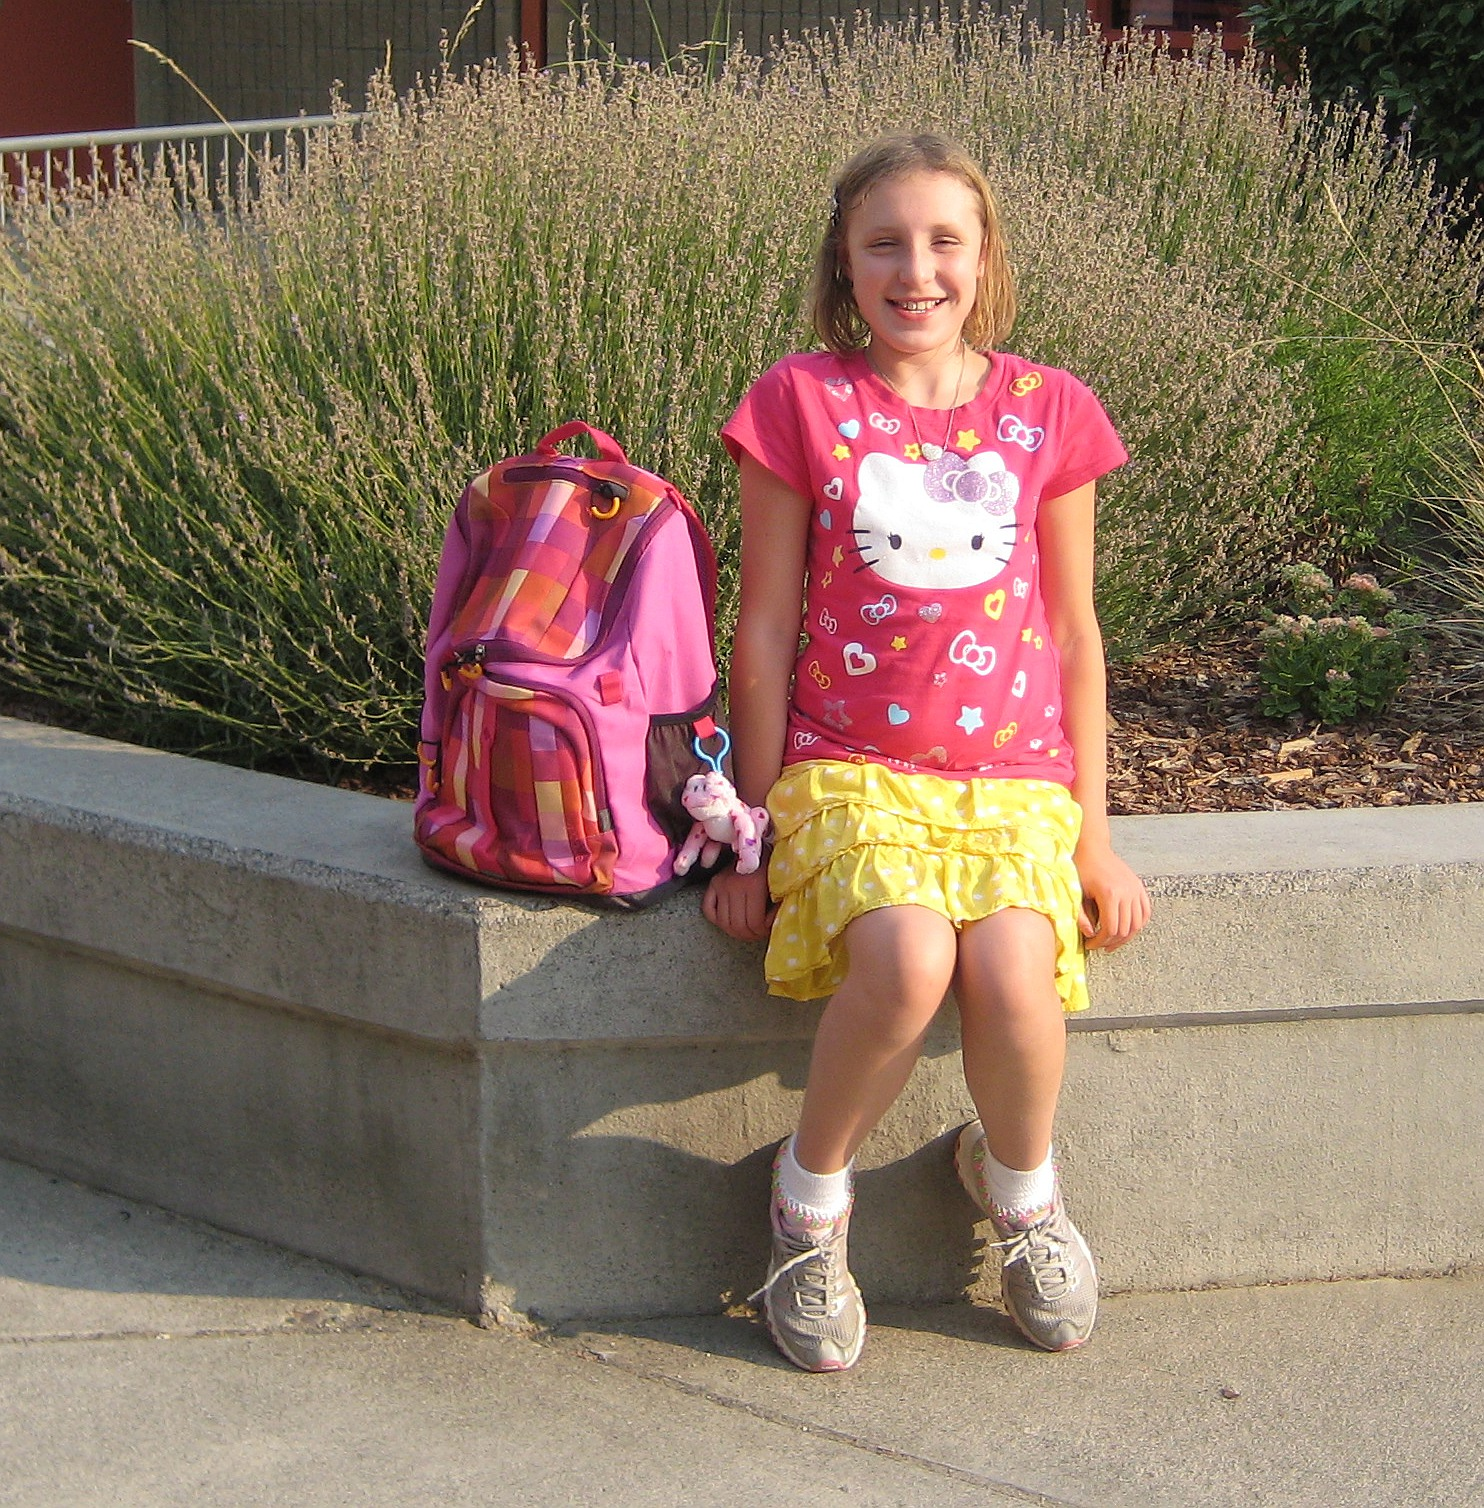 Moore out of Everything: First day of 4th Grade!